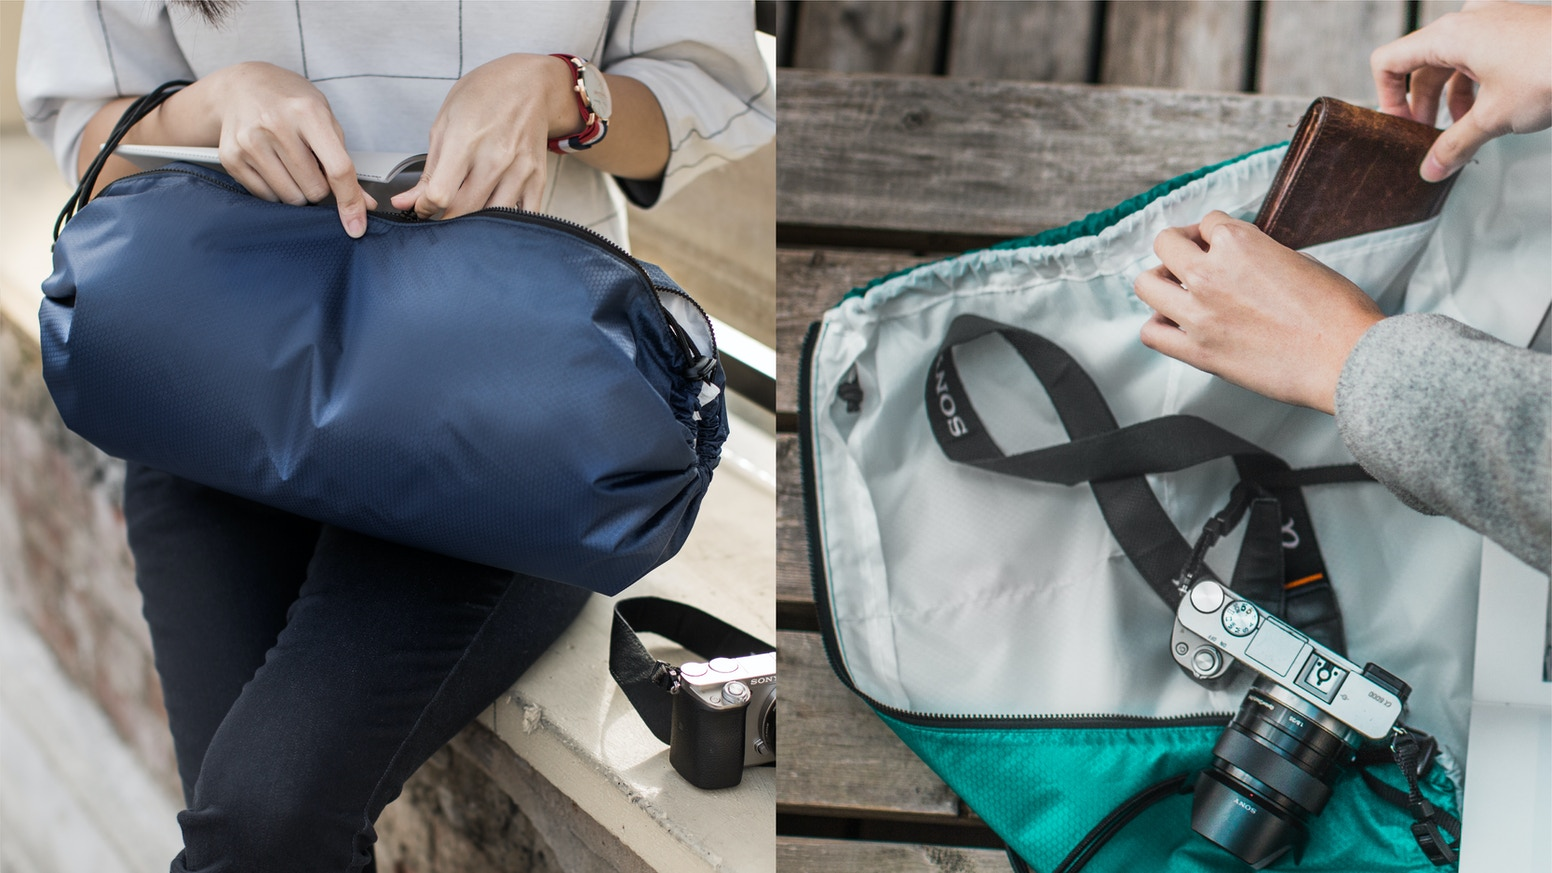 Simple, Smart, Stylish. Designed for everyone to save time in daily life, short travel, and adventure.